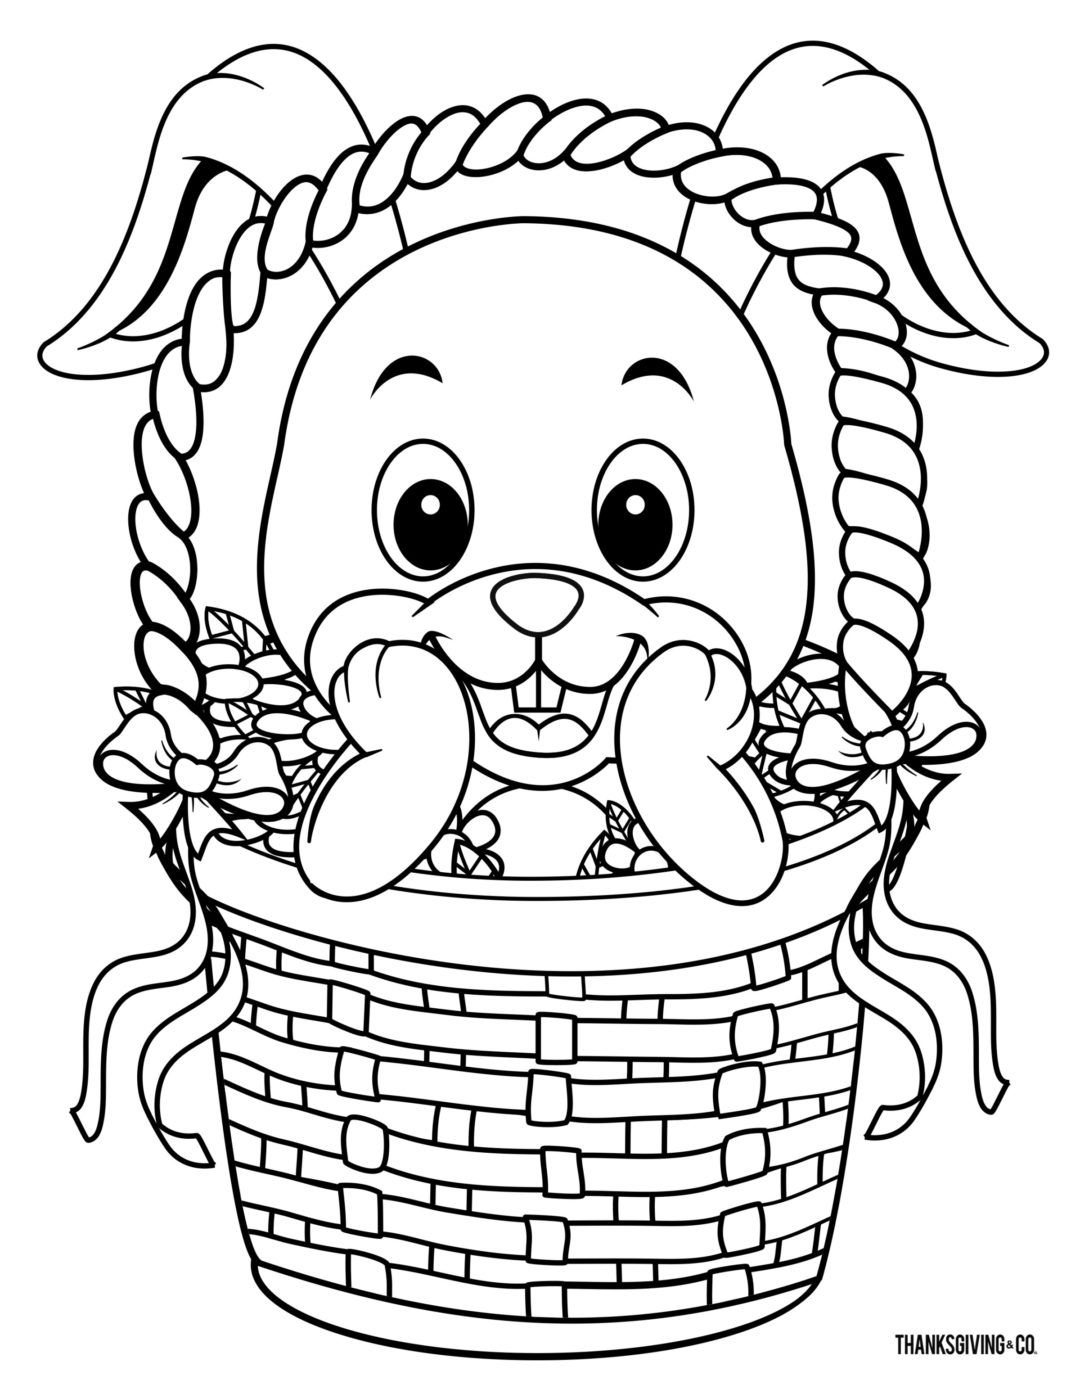 - 8 Free Printable Easter Coloring Pages Your Kids Will Love In 2020